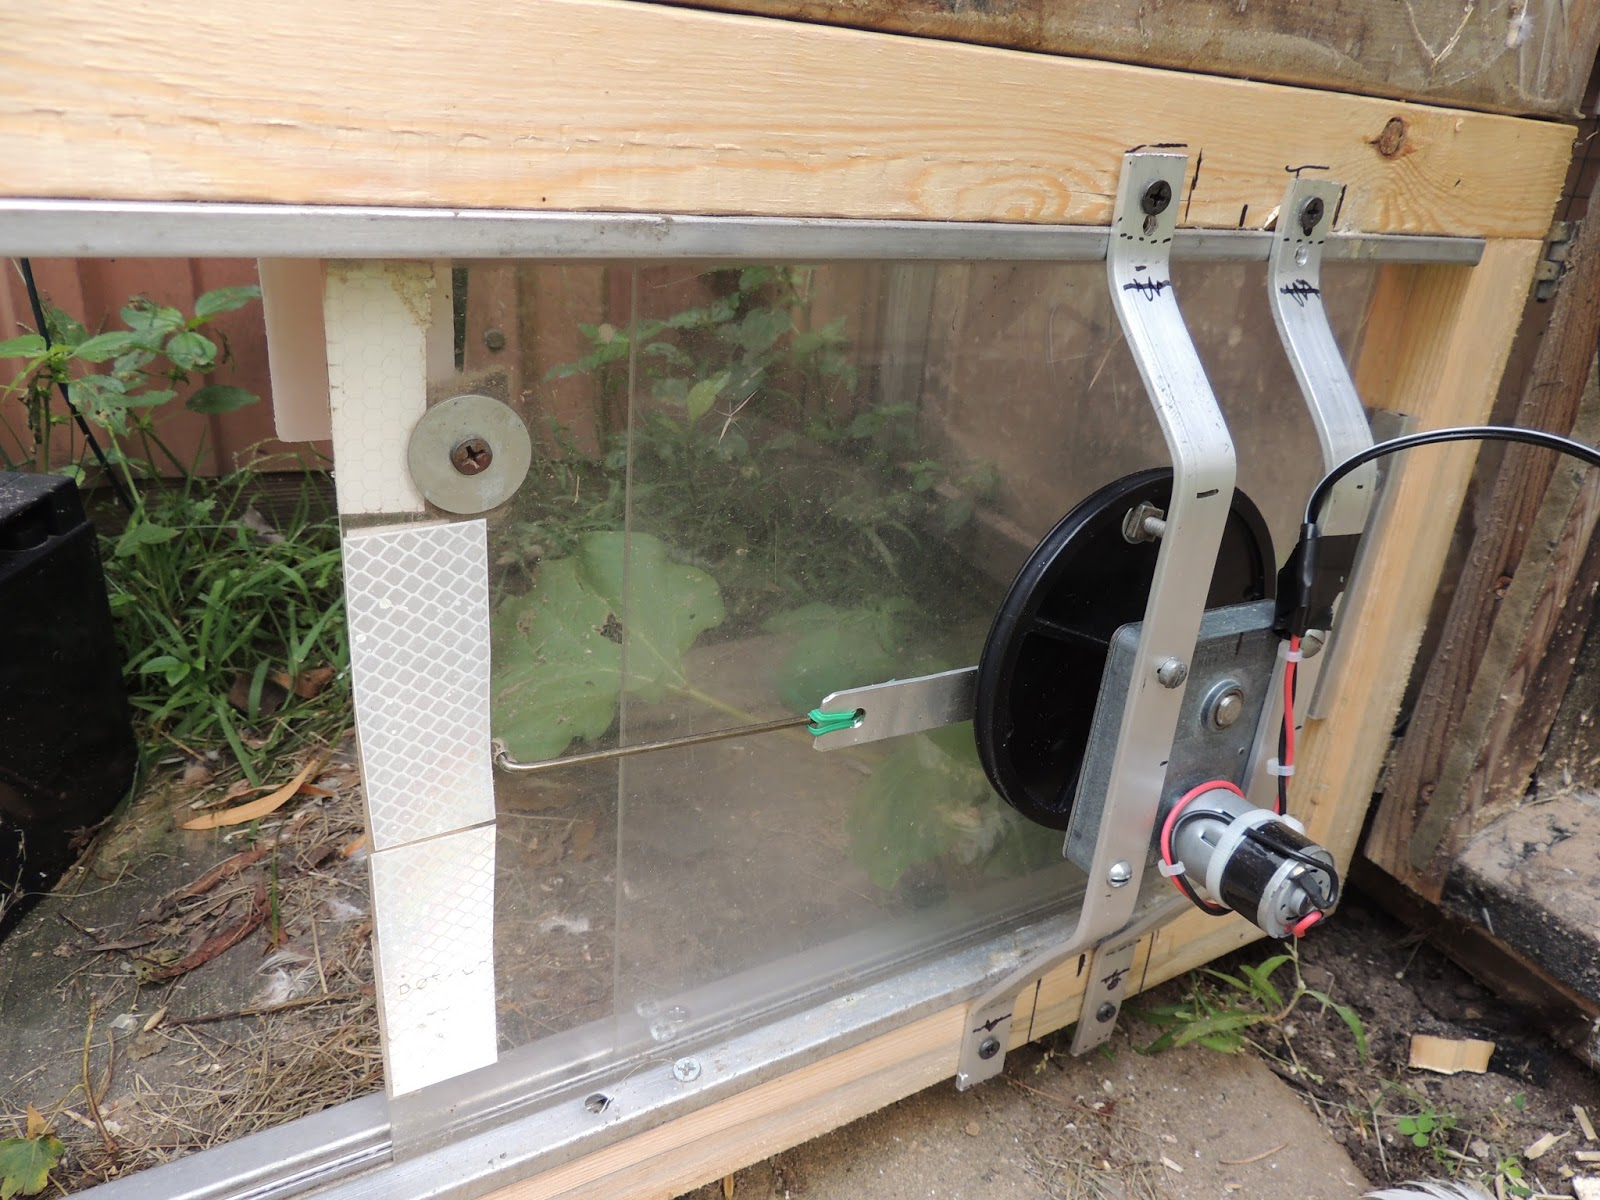 150831a 2731 Aviary Coop Automatic Door.JPG ... Iu0027ve Been Meaning To Do  This For 9 Years, Finally Got Around To It. . . It Will Be Nice When Weu0027re  On ...